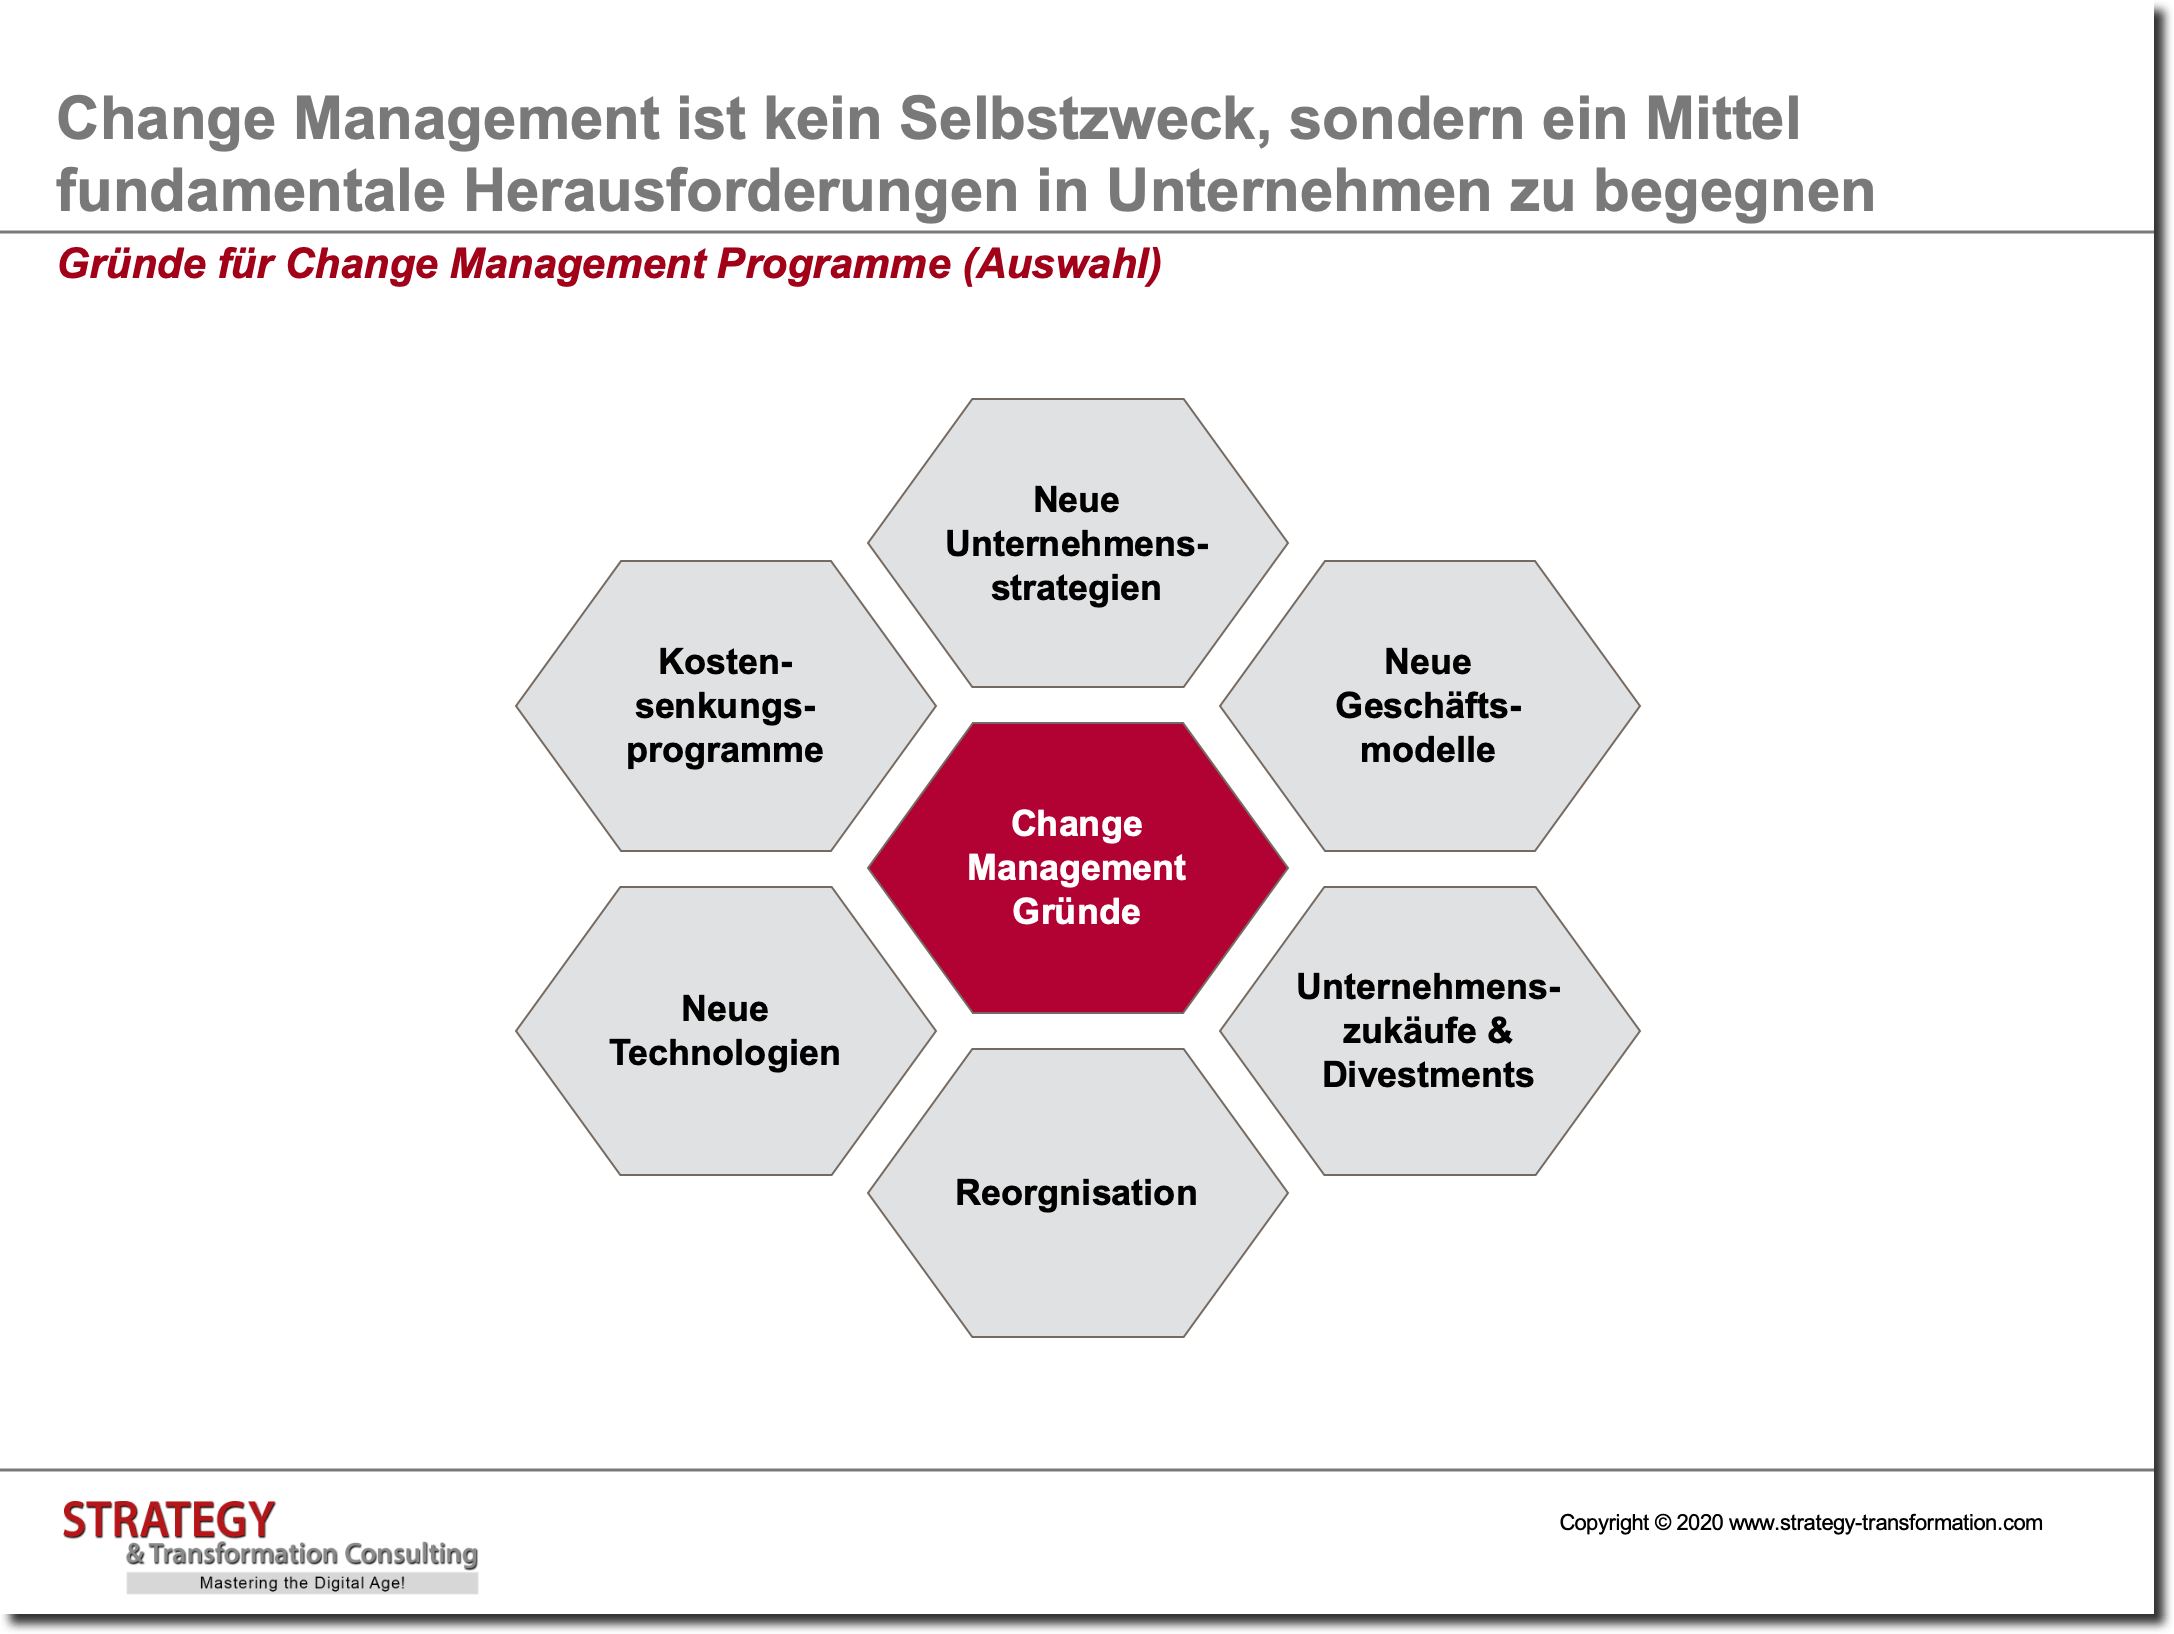 Change Management_Change Gründe